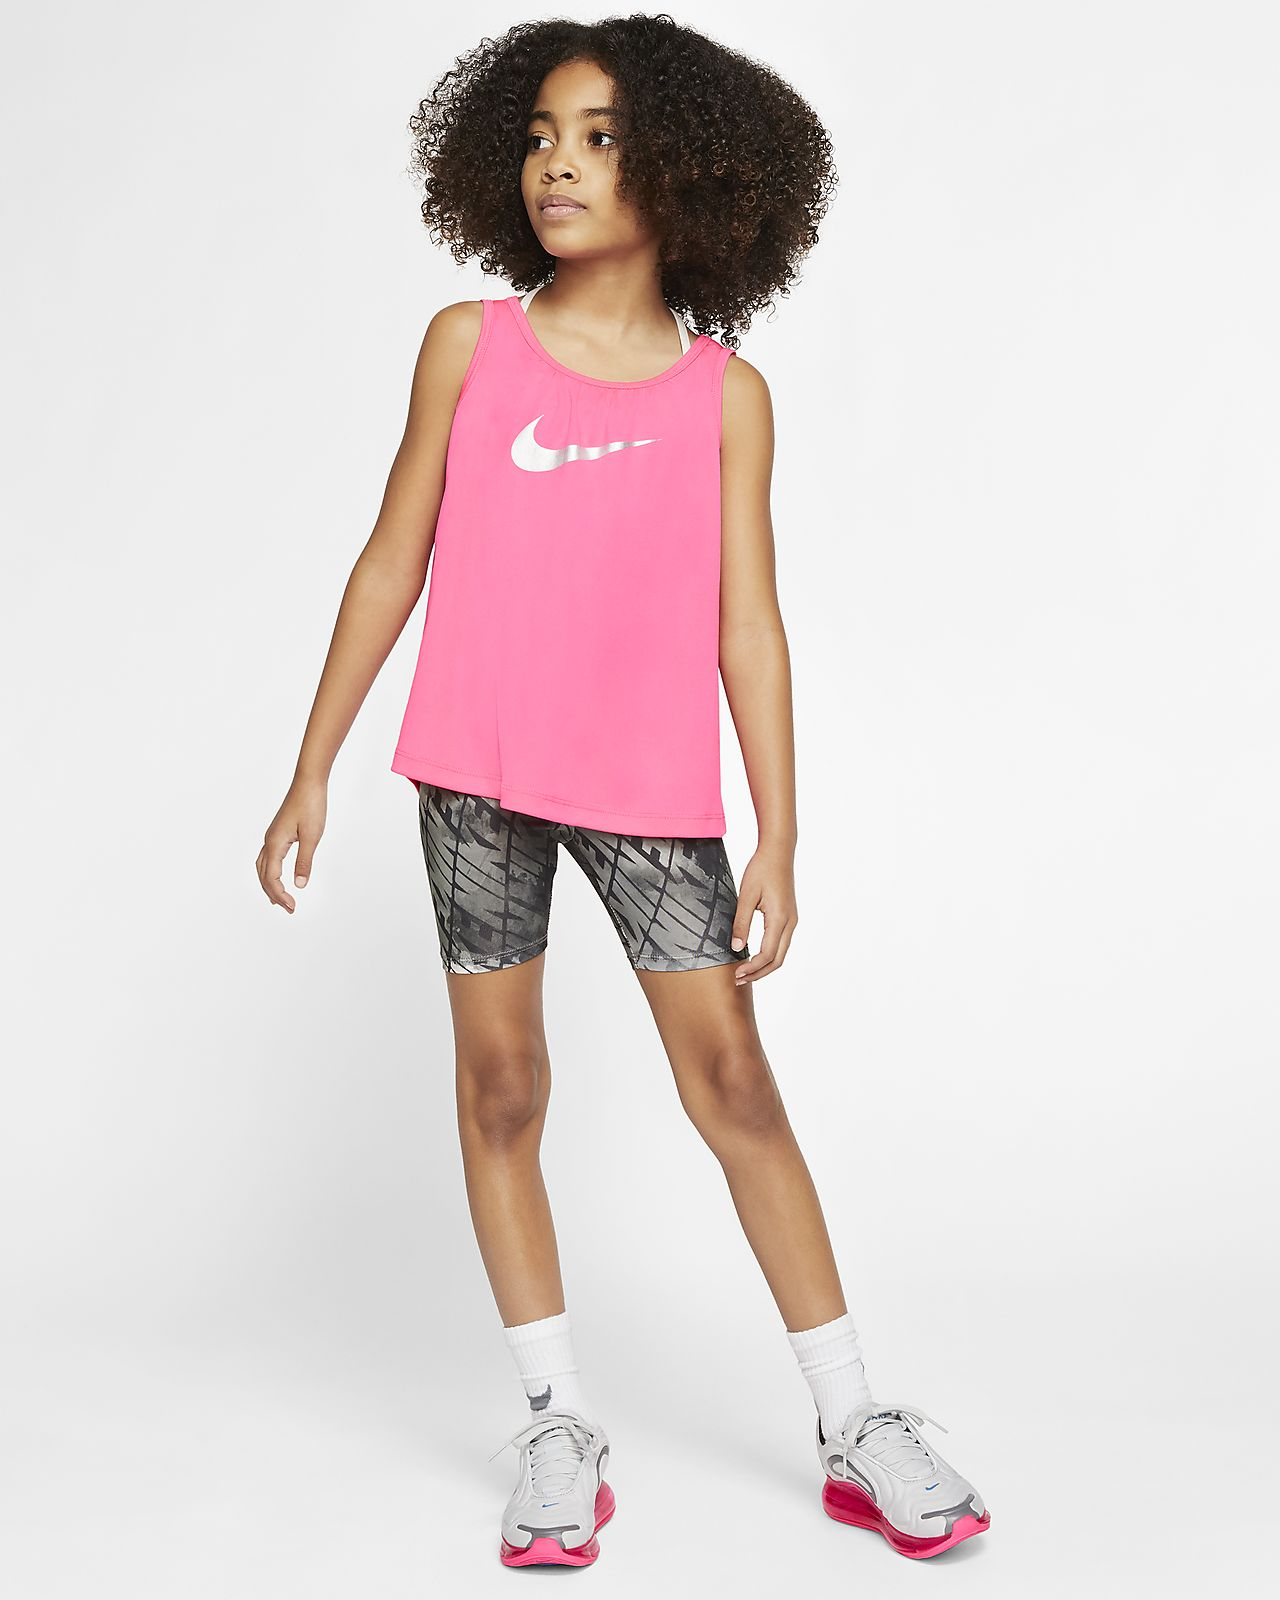 Nike Dri-FIT Little Kids' Top and Shorts Set